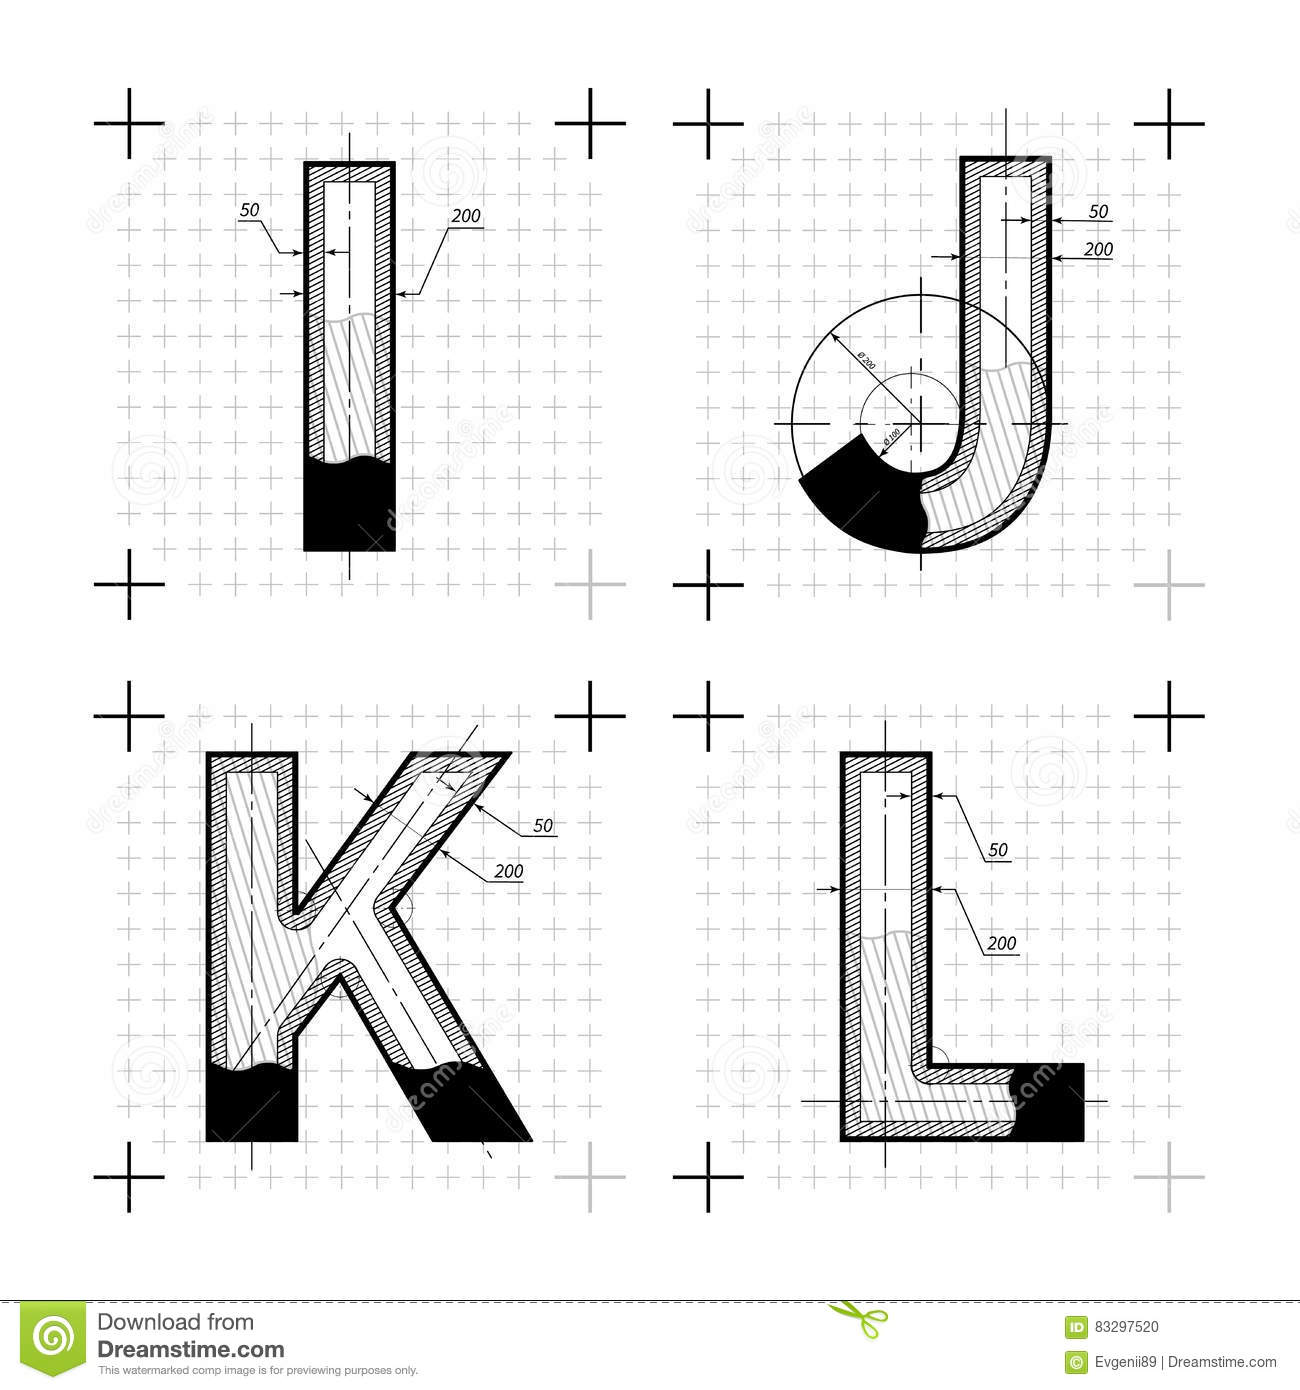 Architectural sketches of i j k l letters blueprint style font architectural sketches of i j k l letters blueprint style font malvernweather Image collections